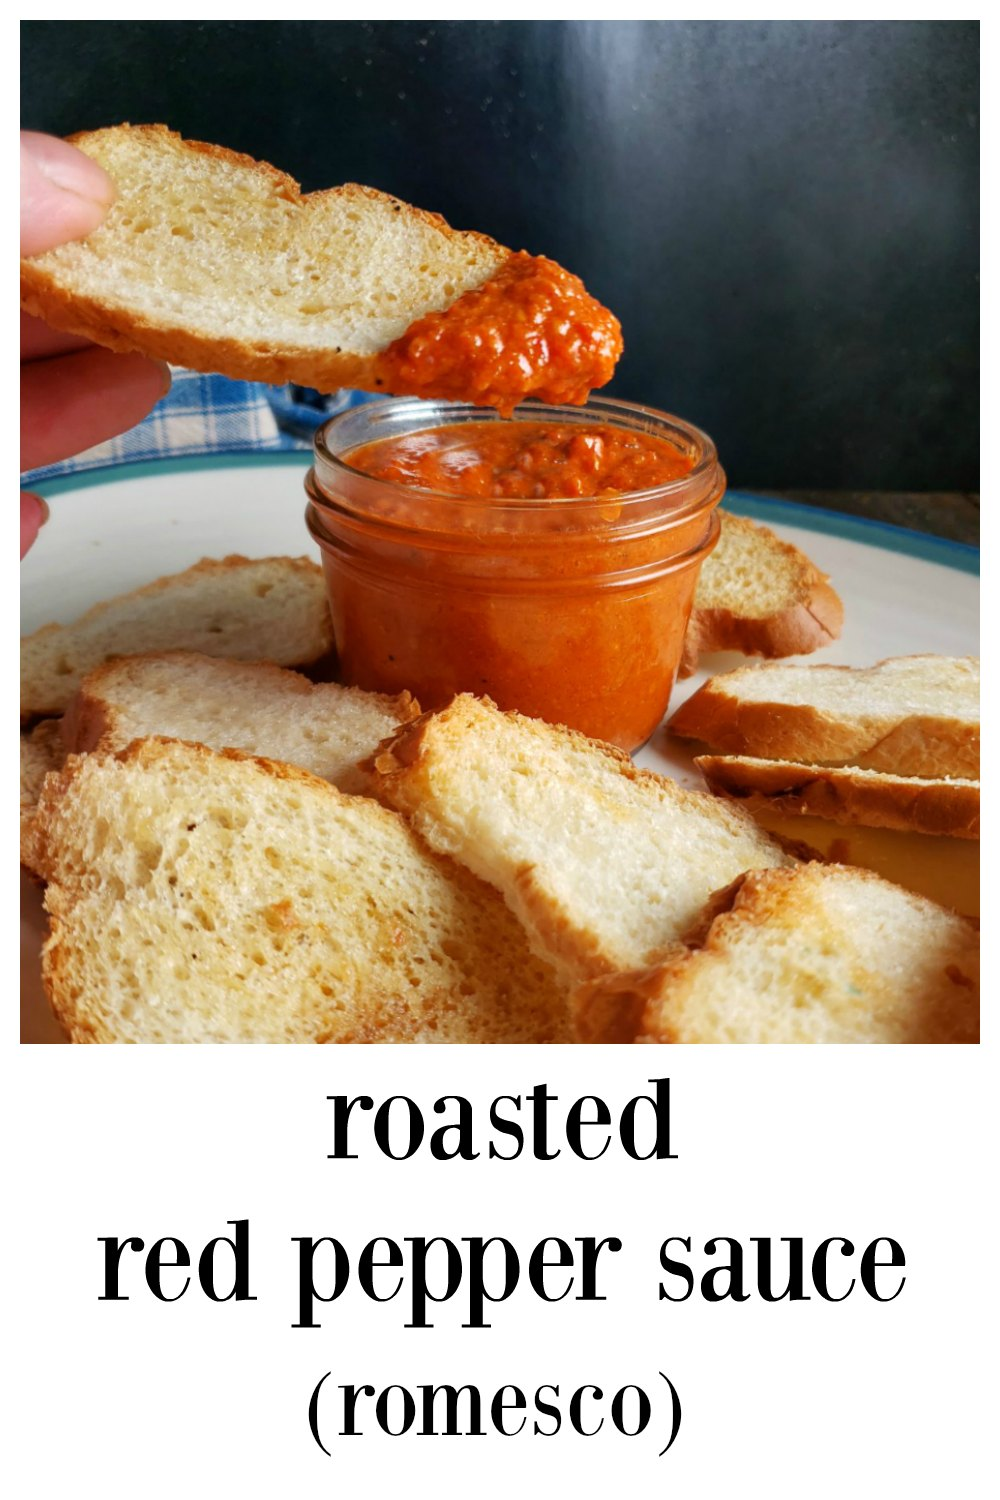 Roasted Red Pepper Sauce, Romesco, quick & easy blender sauce that you'll want to put on just about everything! #RoastedRedPepperSauce #RedPepperSauce #Romesco #RomescoSauce